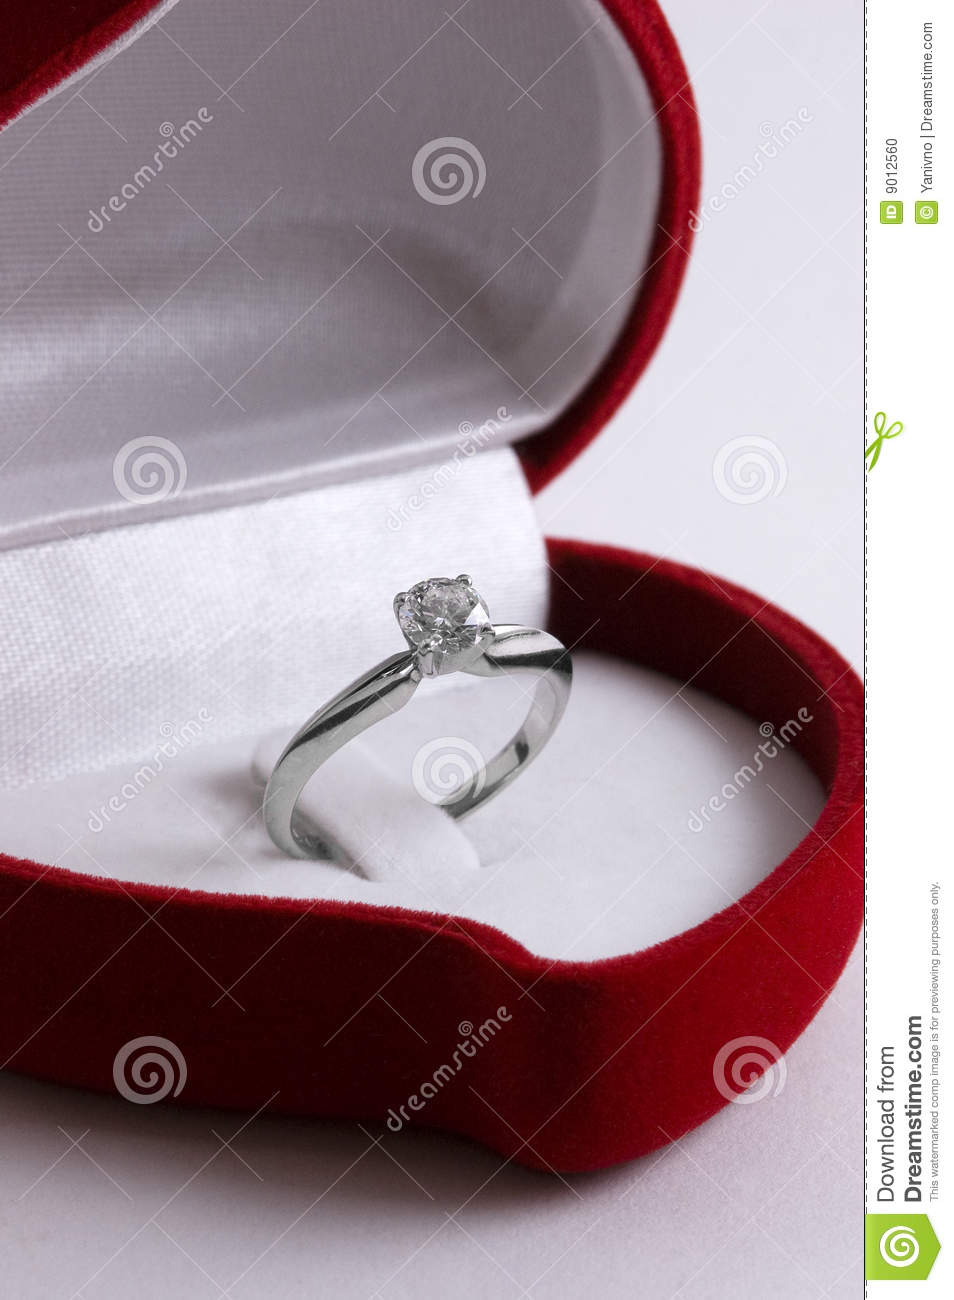 Engagement diamond ring in a red heart shaped box stock for Heart shaped engagement ring box